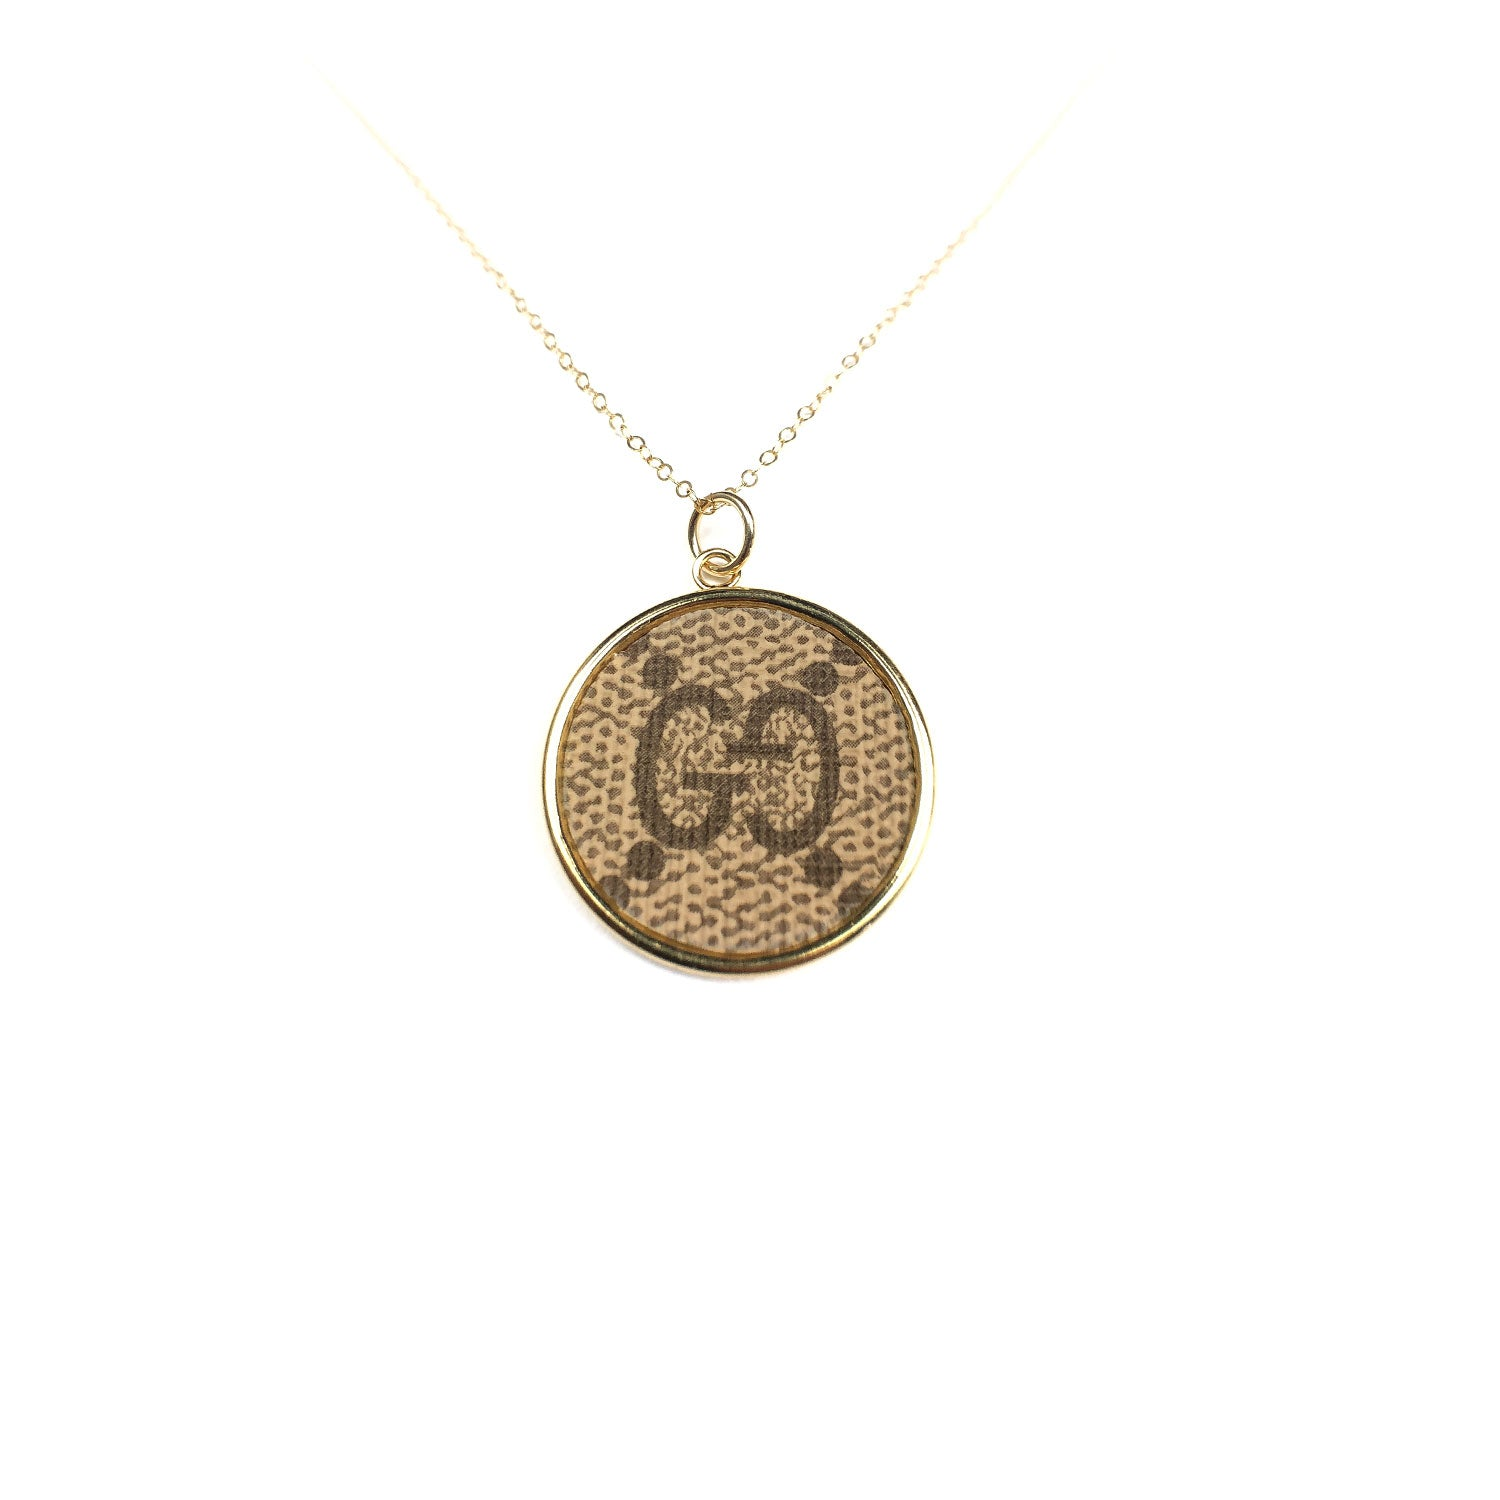 Moon and Lola - Goji Round Charm Pendant on Apex Chain